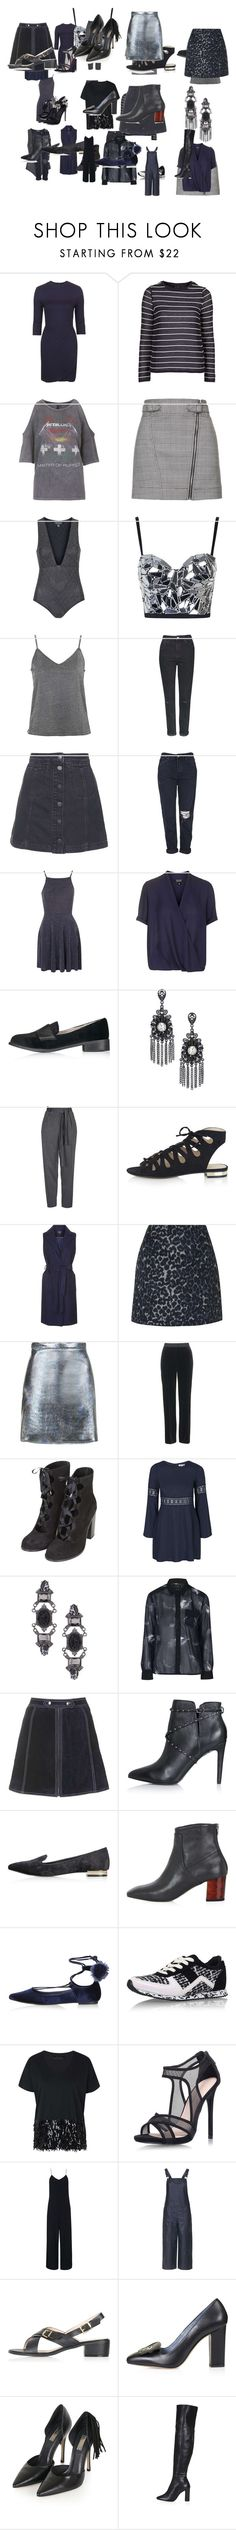 """Untitled #2863"" by luciana-boneca on Polyvore featuring beauty, Topshop, And Finally, Oh My Love, Rare London, Motel and Unique"